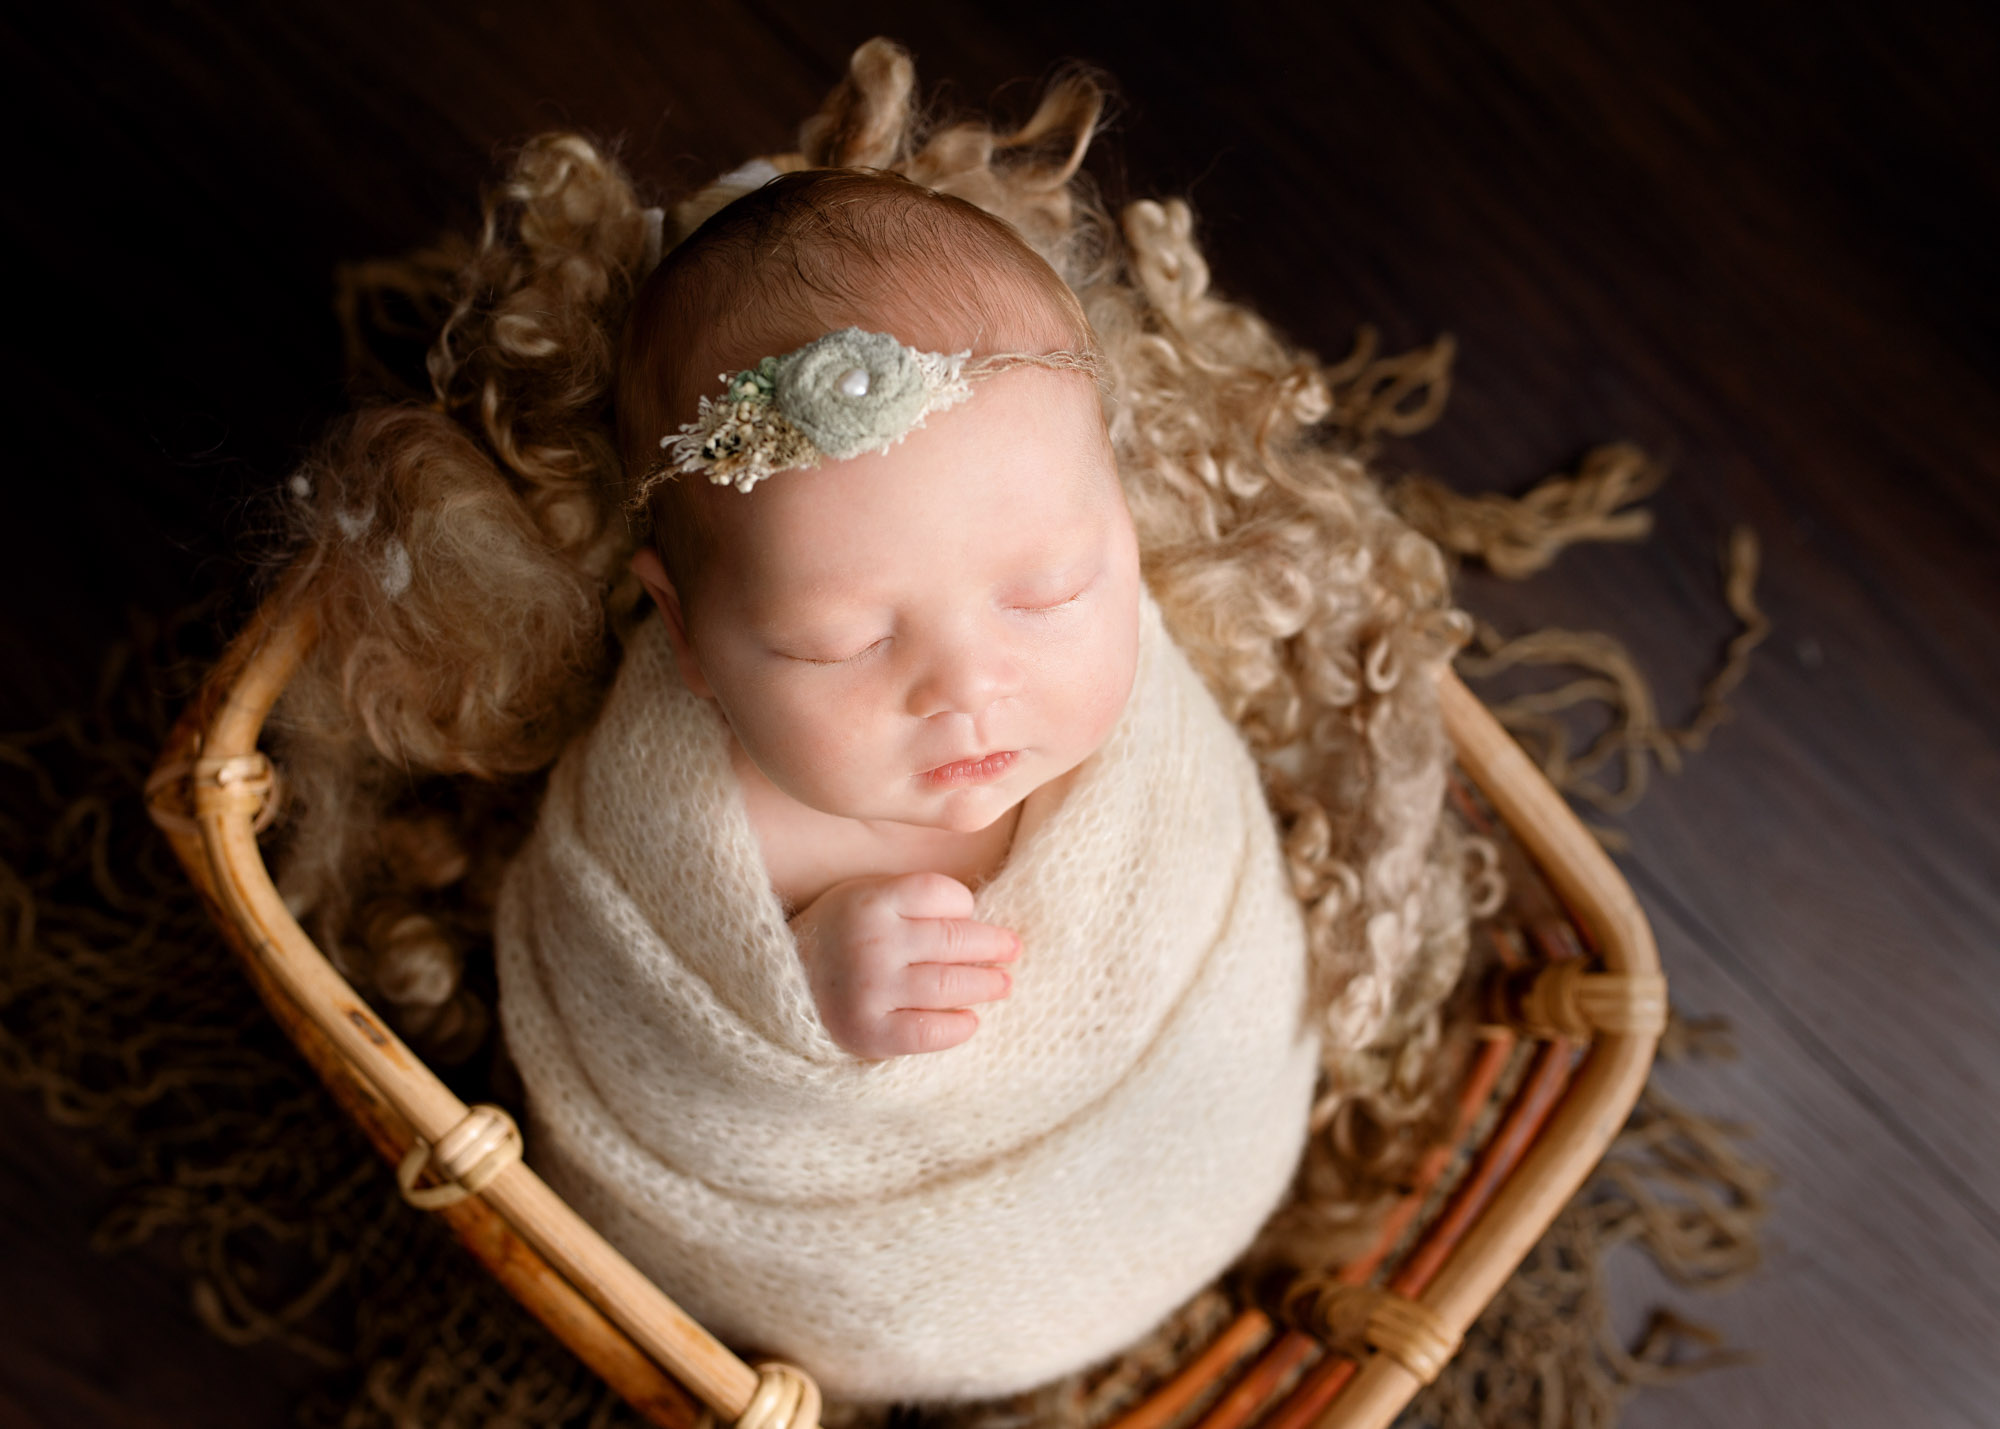 baby girl wrapped in cream blanket in a bamboo basket